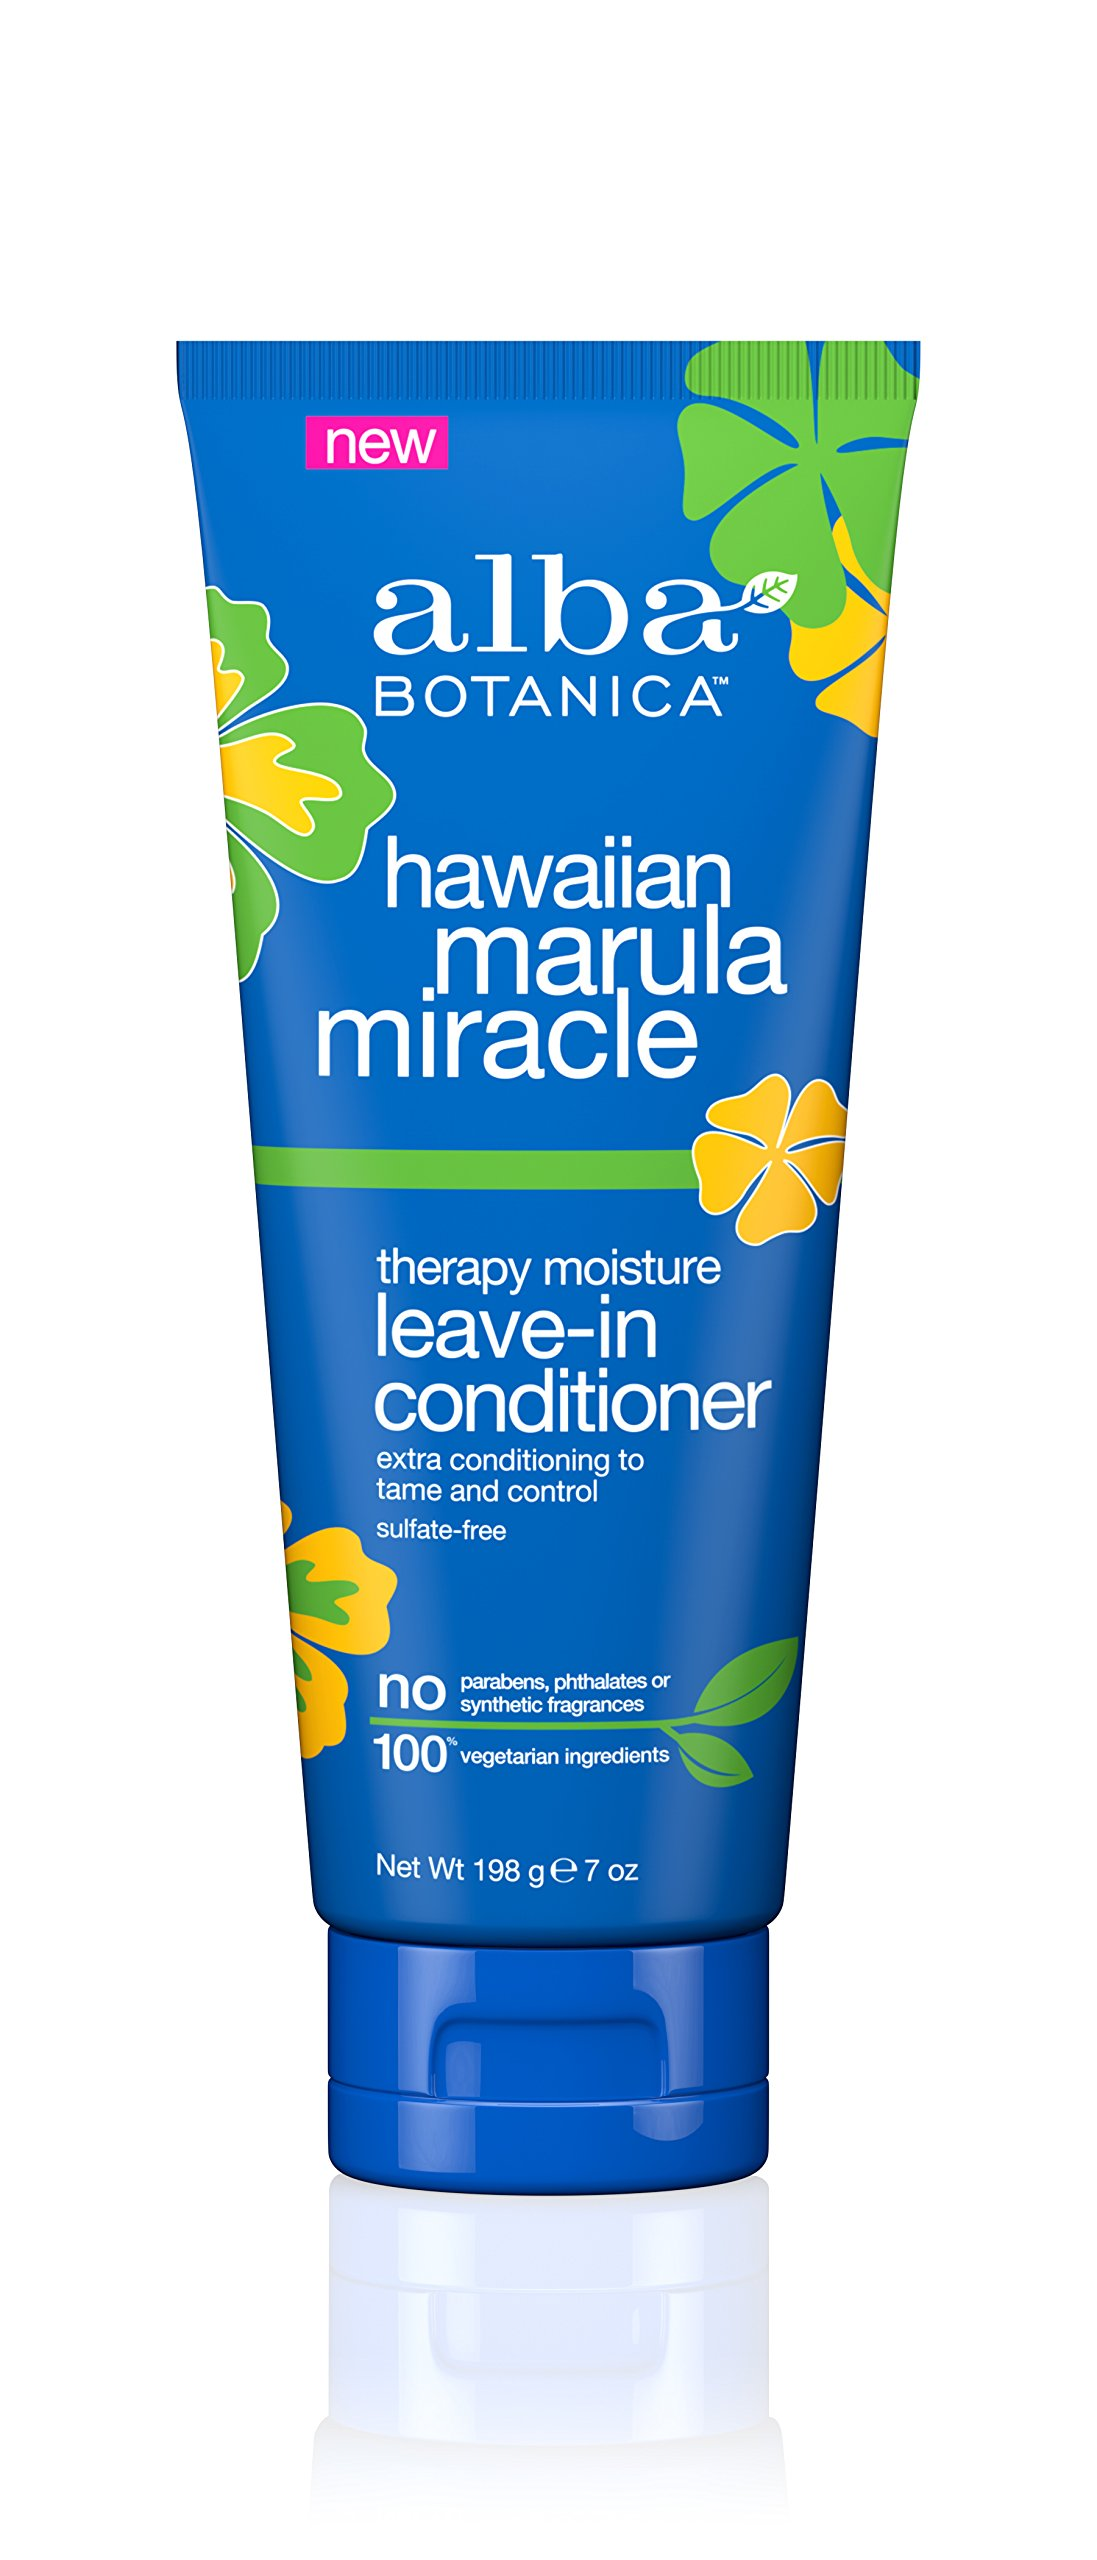 Alba Botanica Hawaiian Marula Miracle Therapy Moisture Leave-In Conditioner, 6 Count